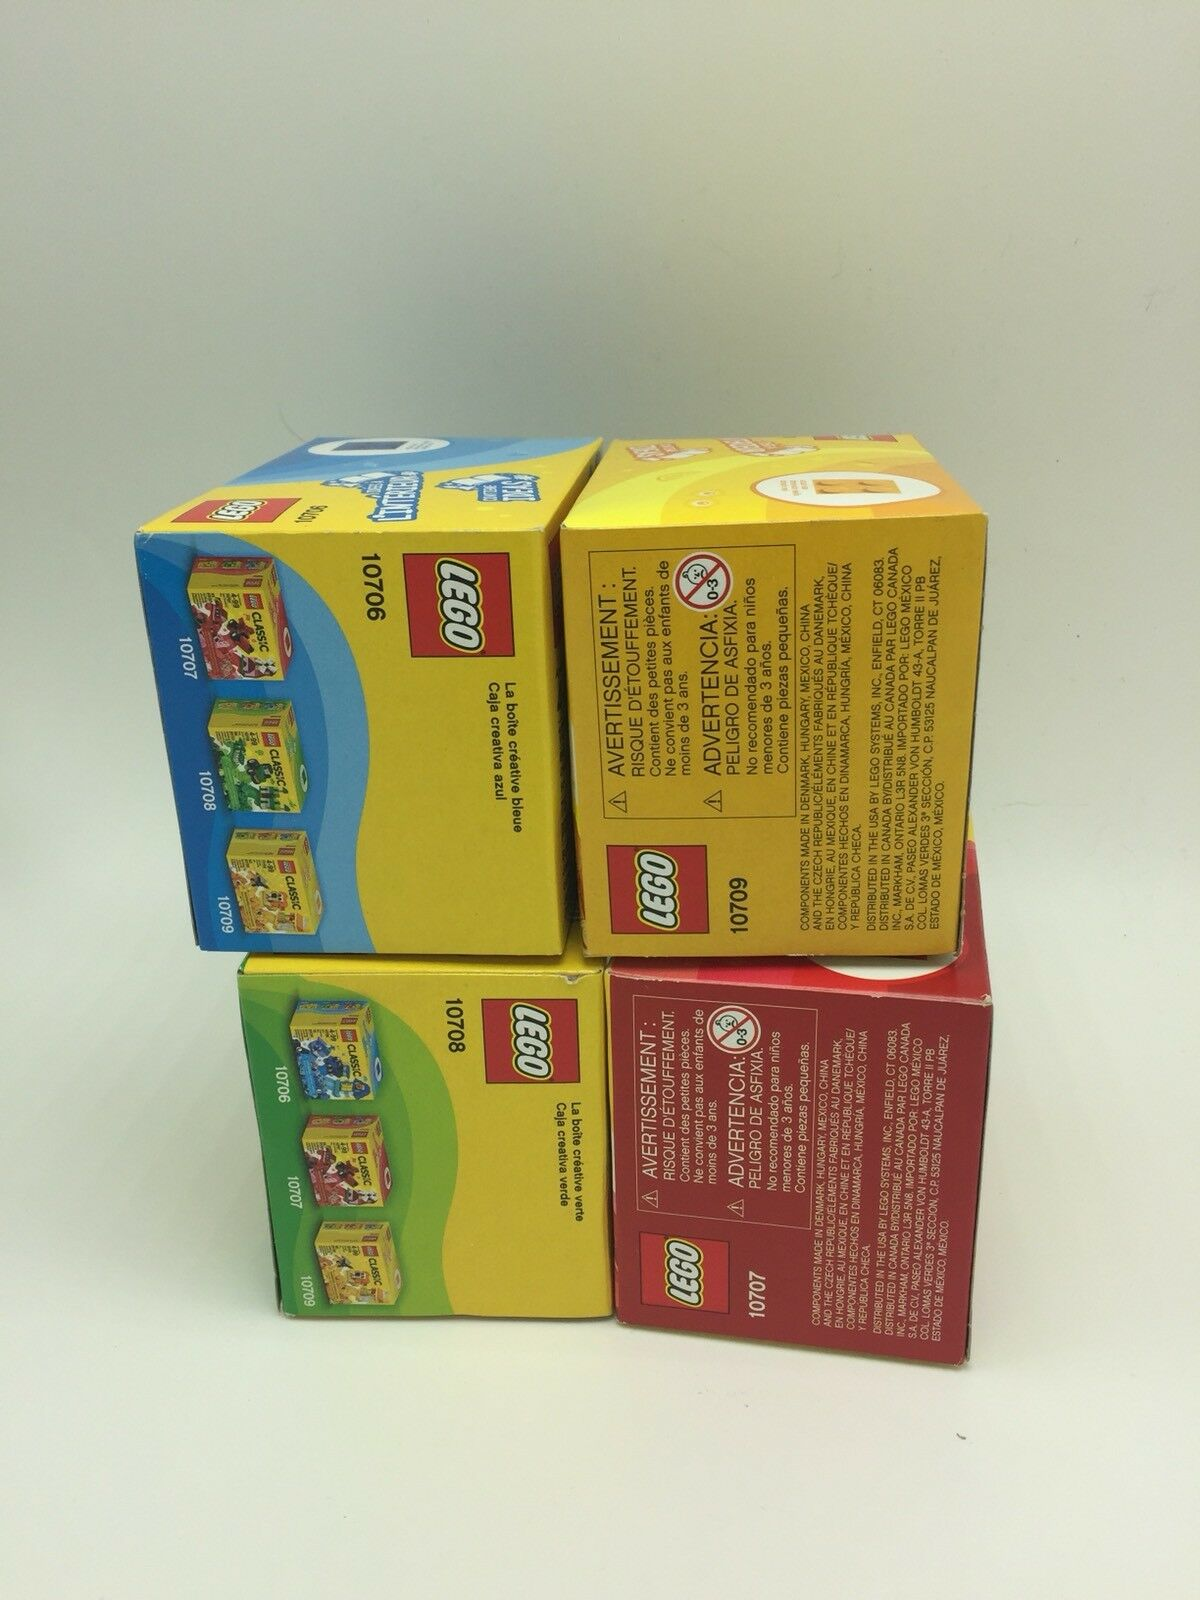 Lego Classic Red Green bluee Yellow NEW Creativity Boxes LOT LOT LOT 4 NIB 259 pieces bcb2e7